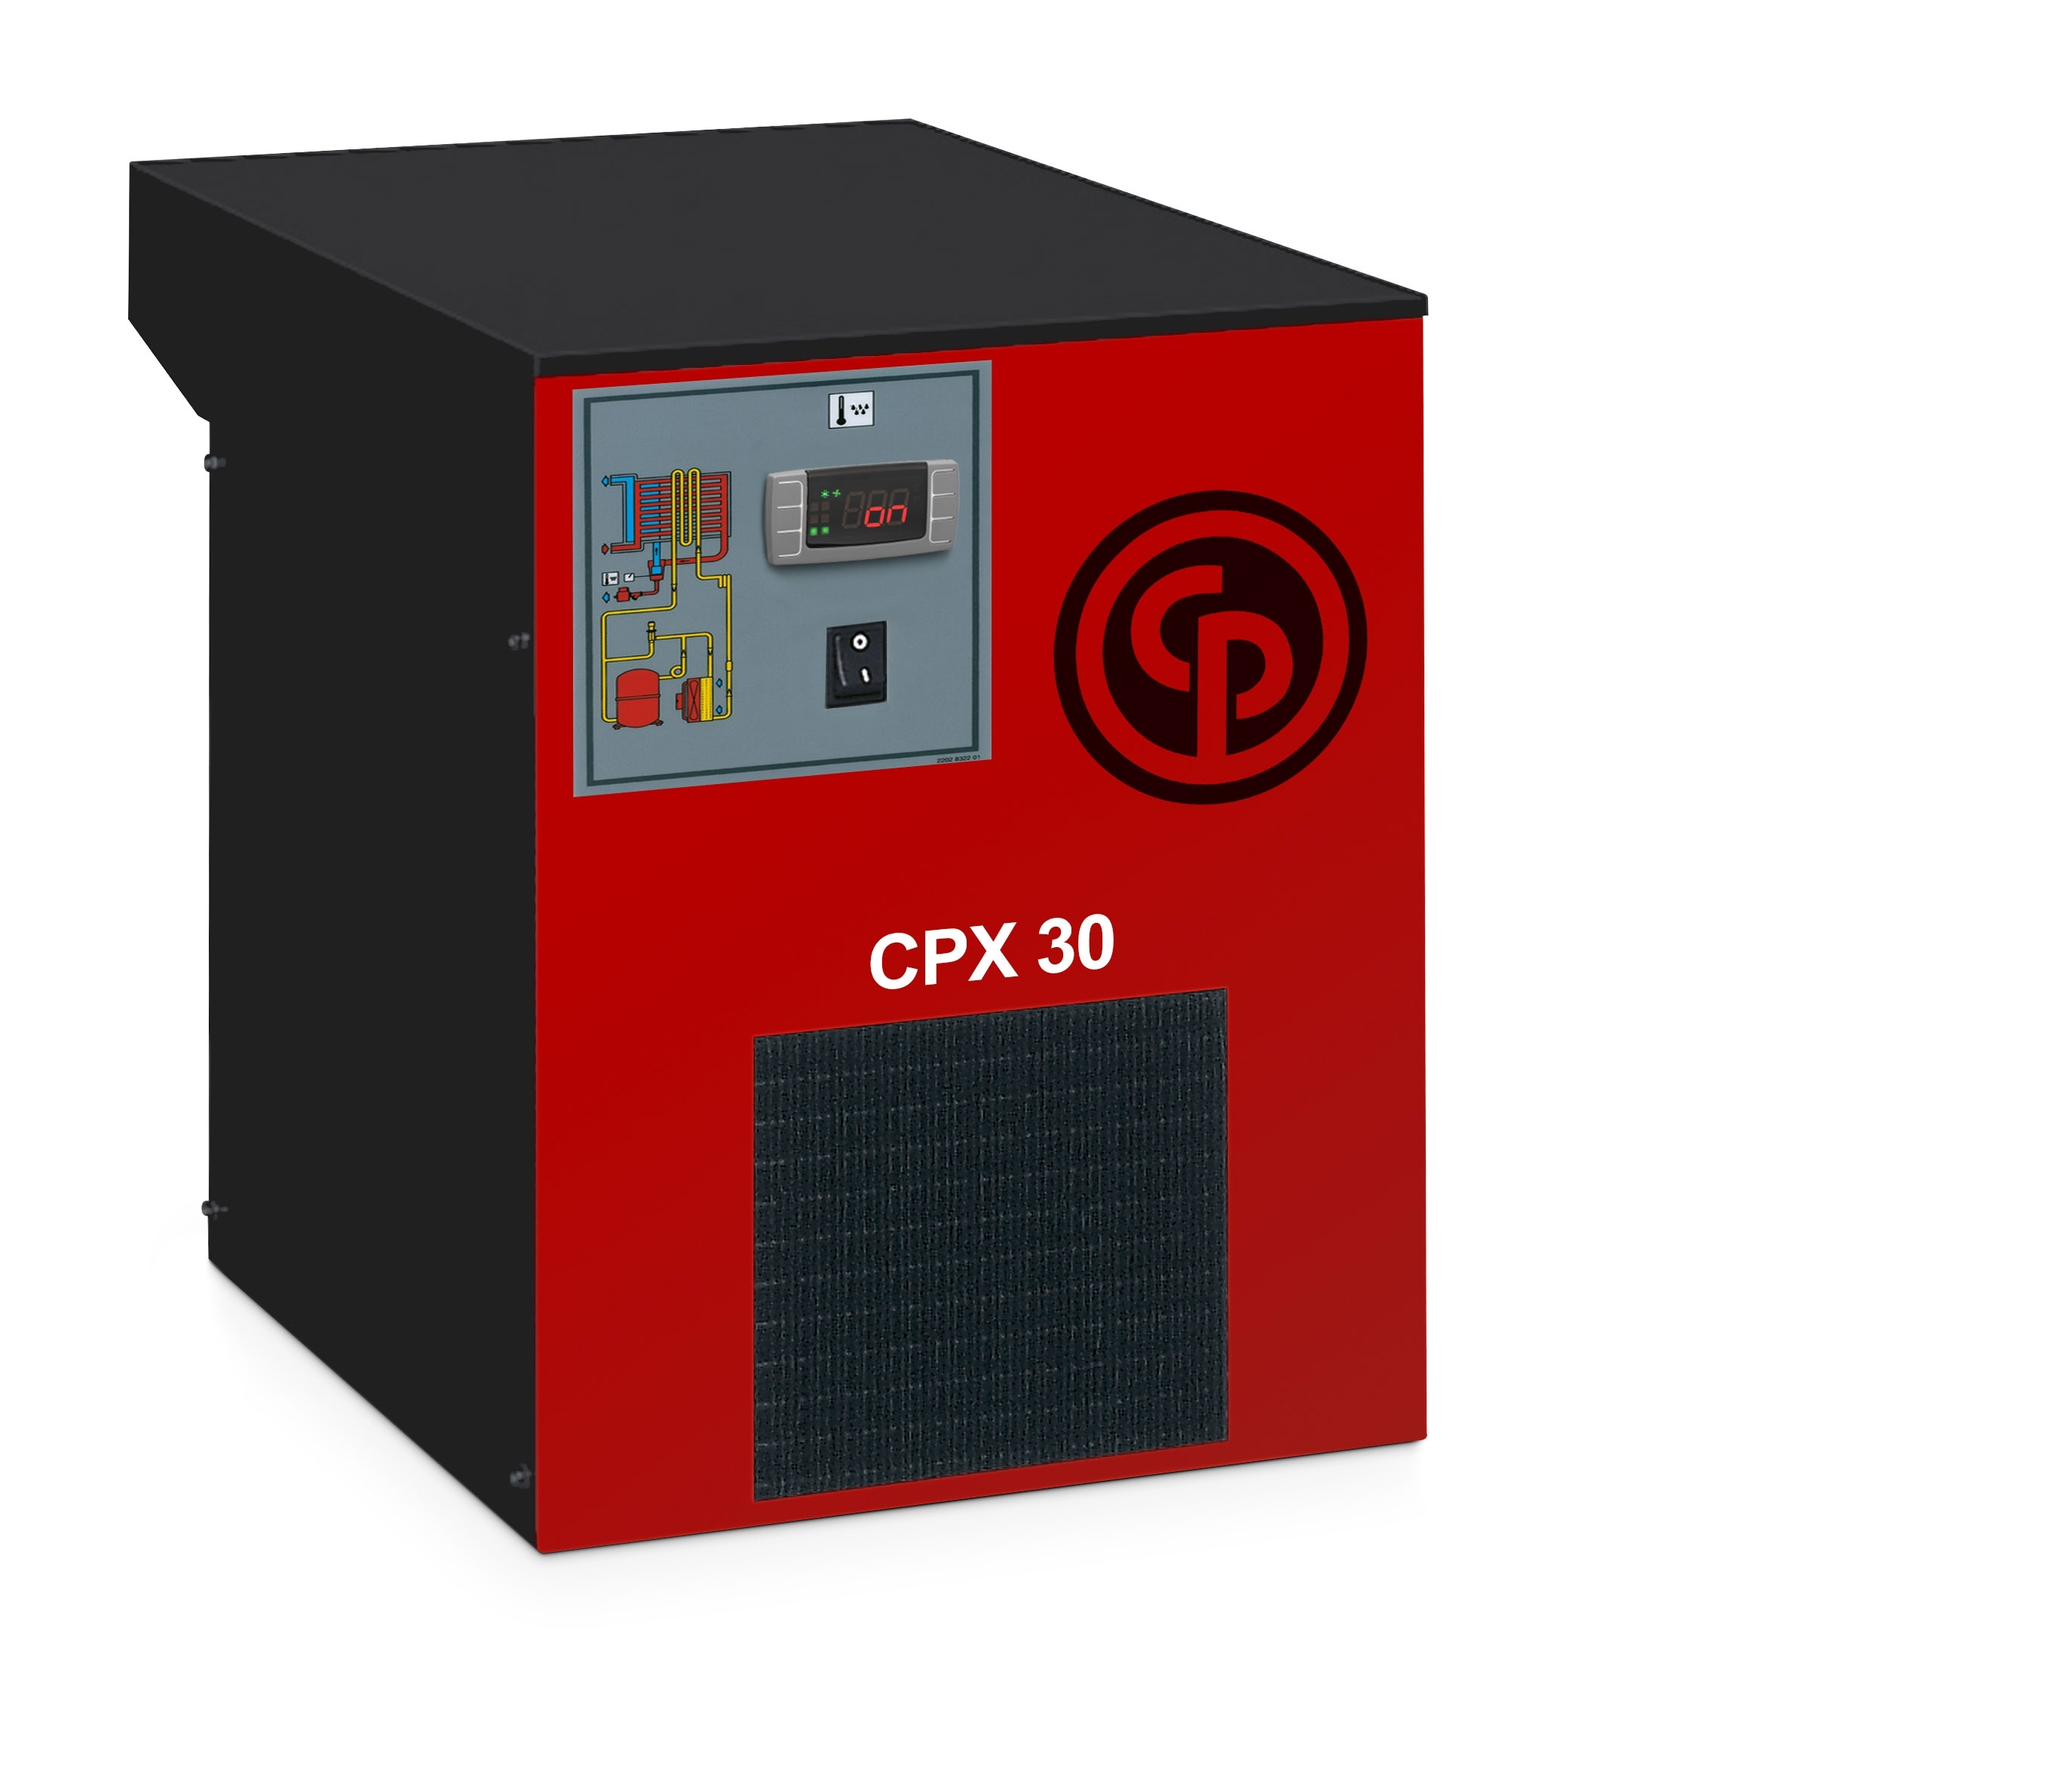 CPX 30 Chicago Pneumatic Dryer